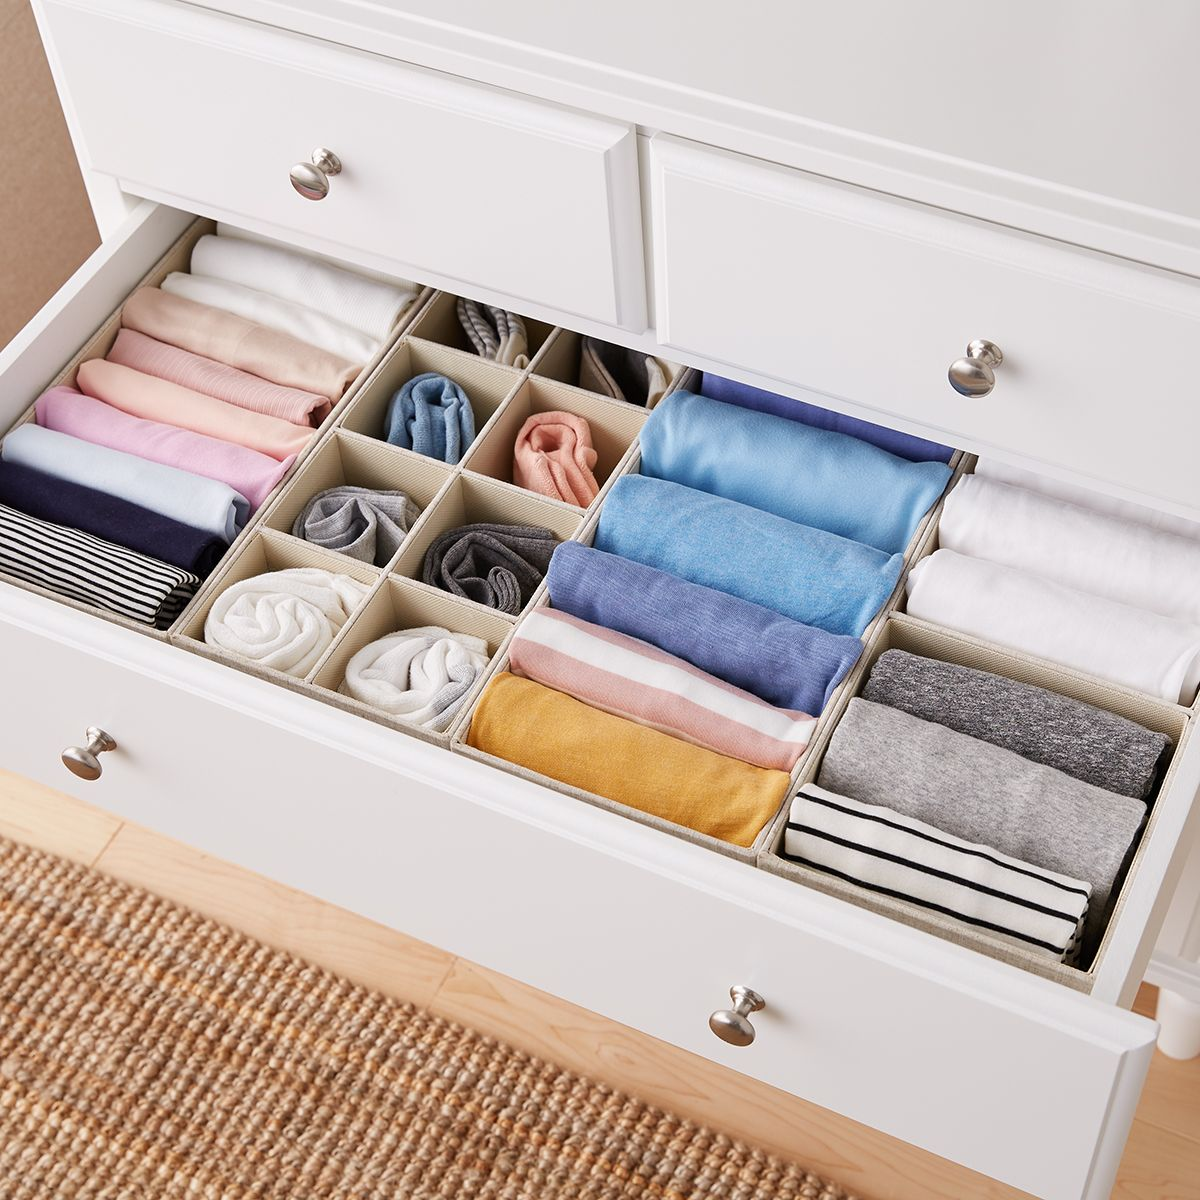 rolled clothes in dresser drawer